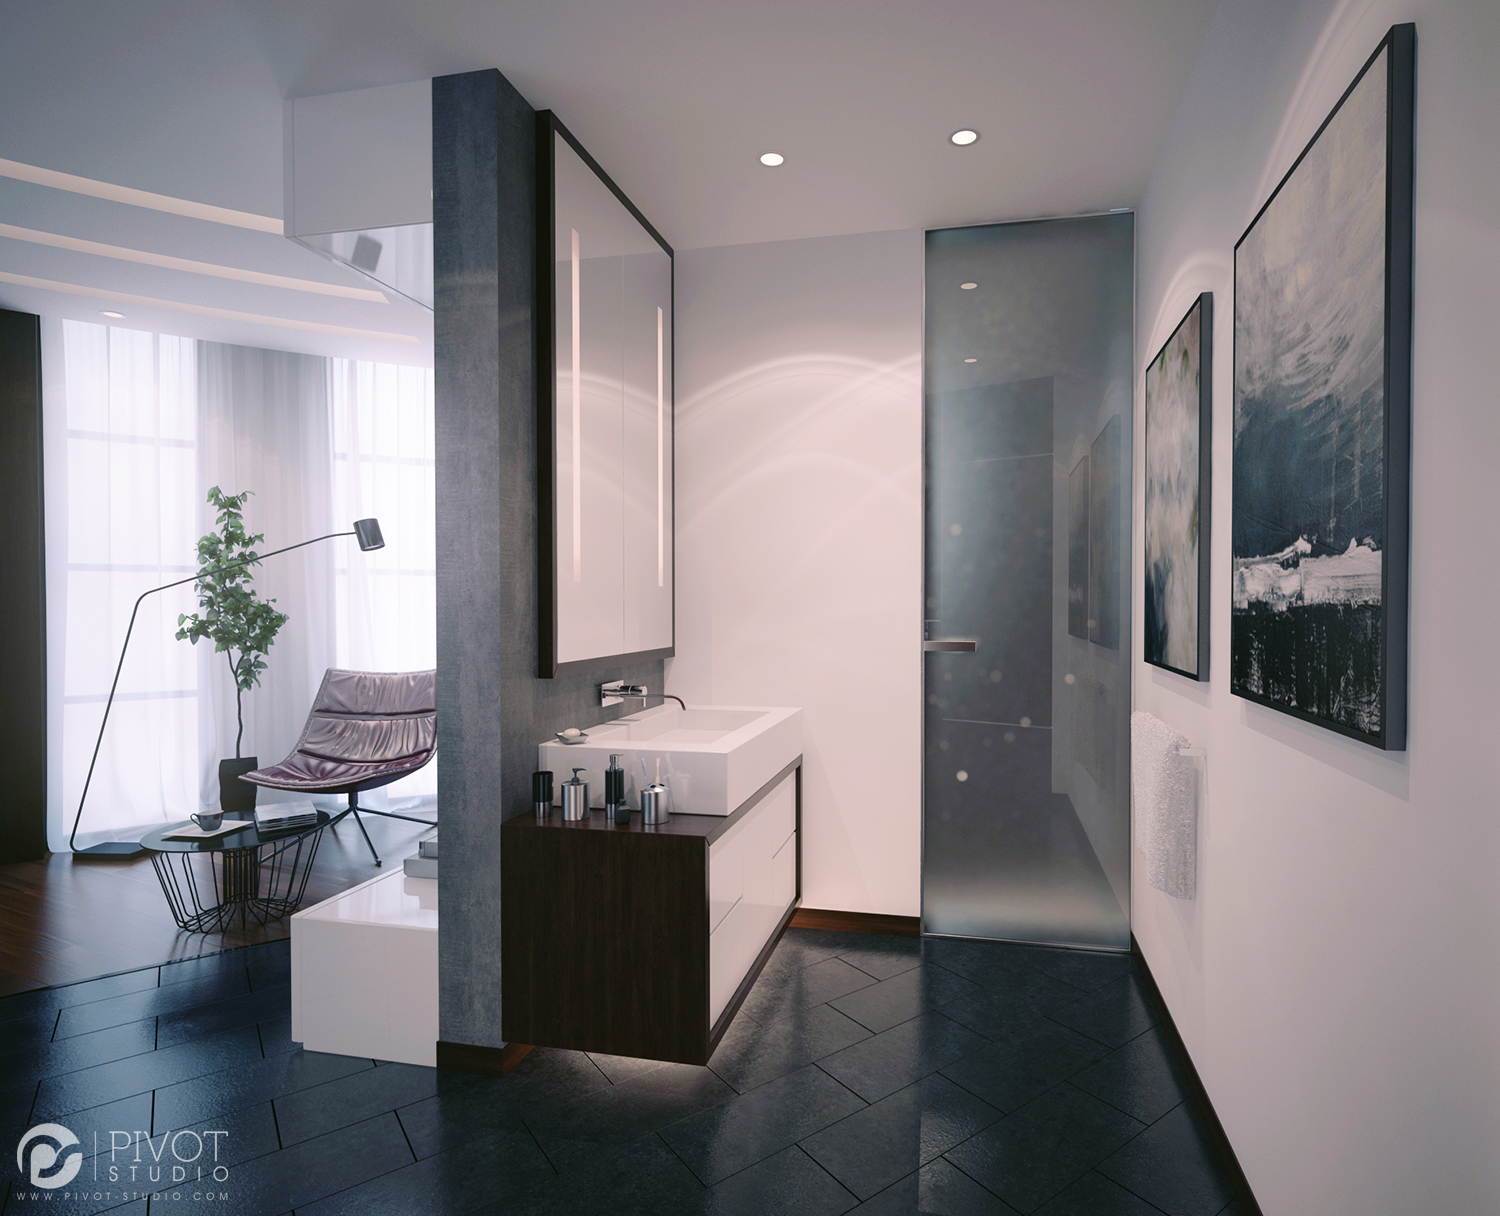 Wall Mounted Vanity Unit - Luxurious room schemes